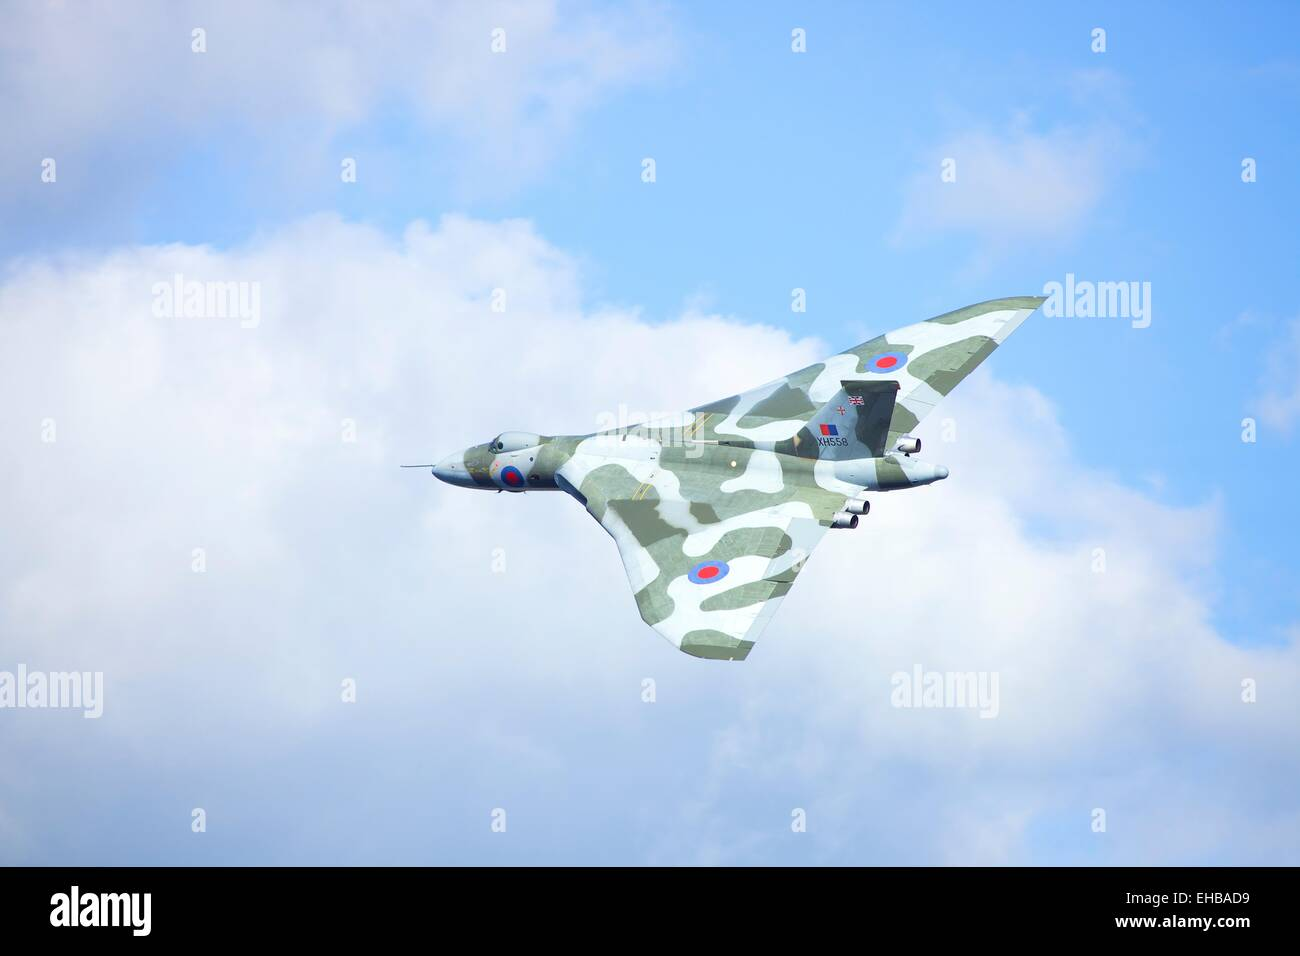 Avro Vulcan Bomber XH558 The Spirit of Great Britain, flying at Windermere Air Show 2011, Cumbria, UK. - Stock Image